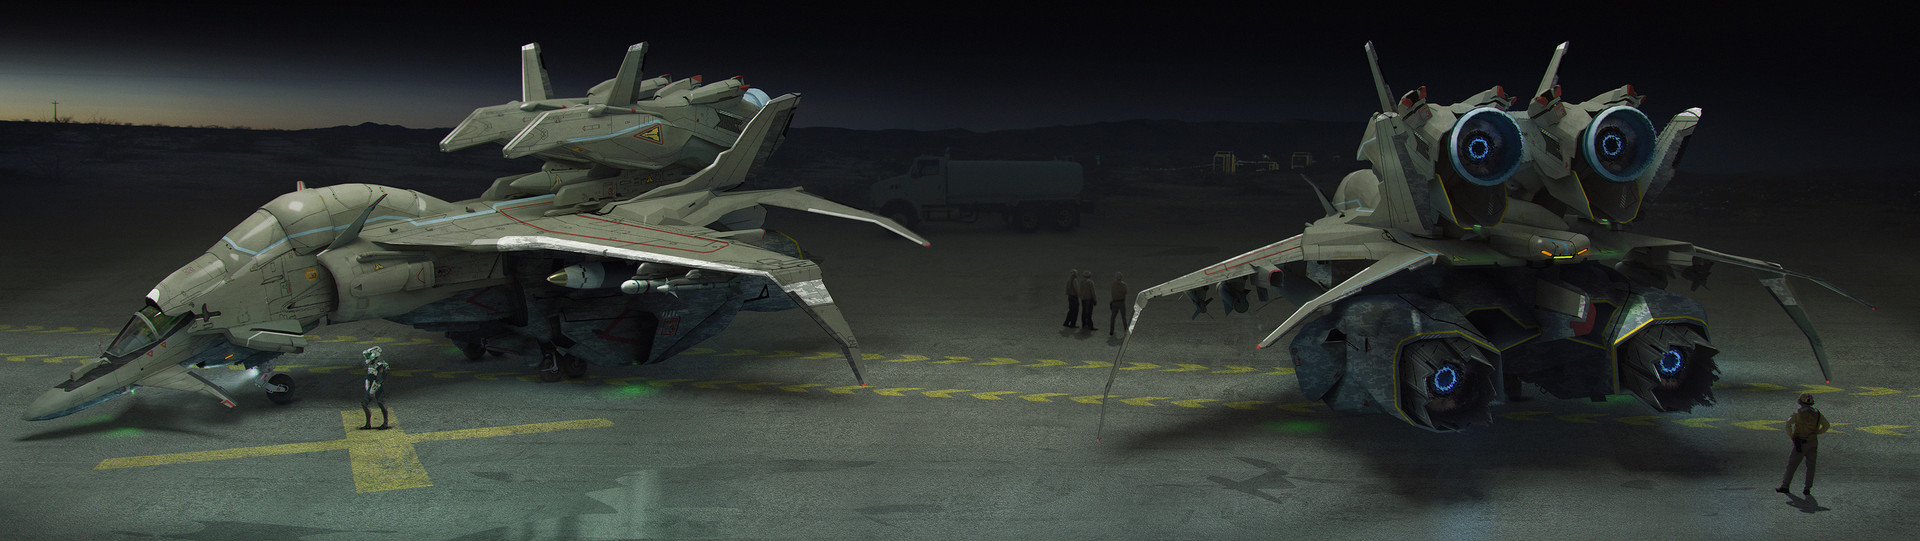 Brad wright jet fighter concept 01